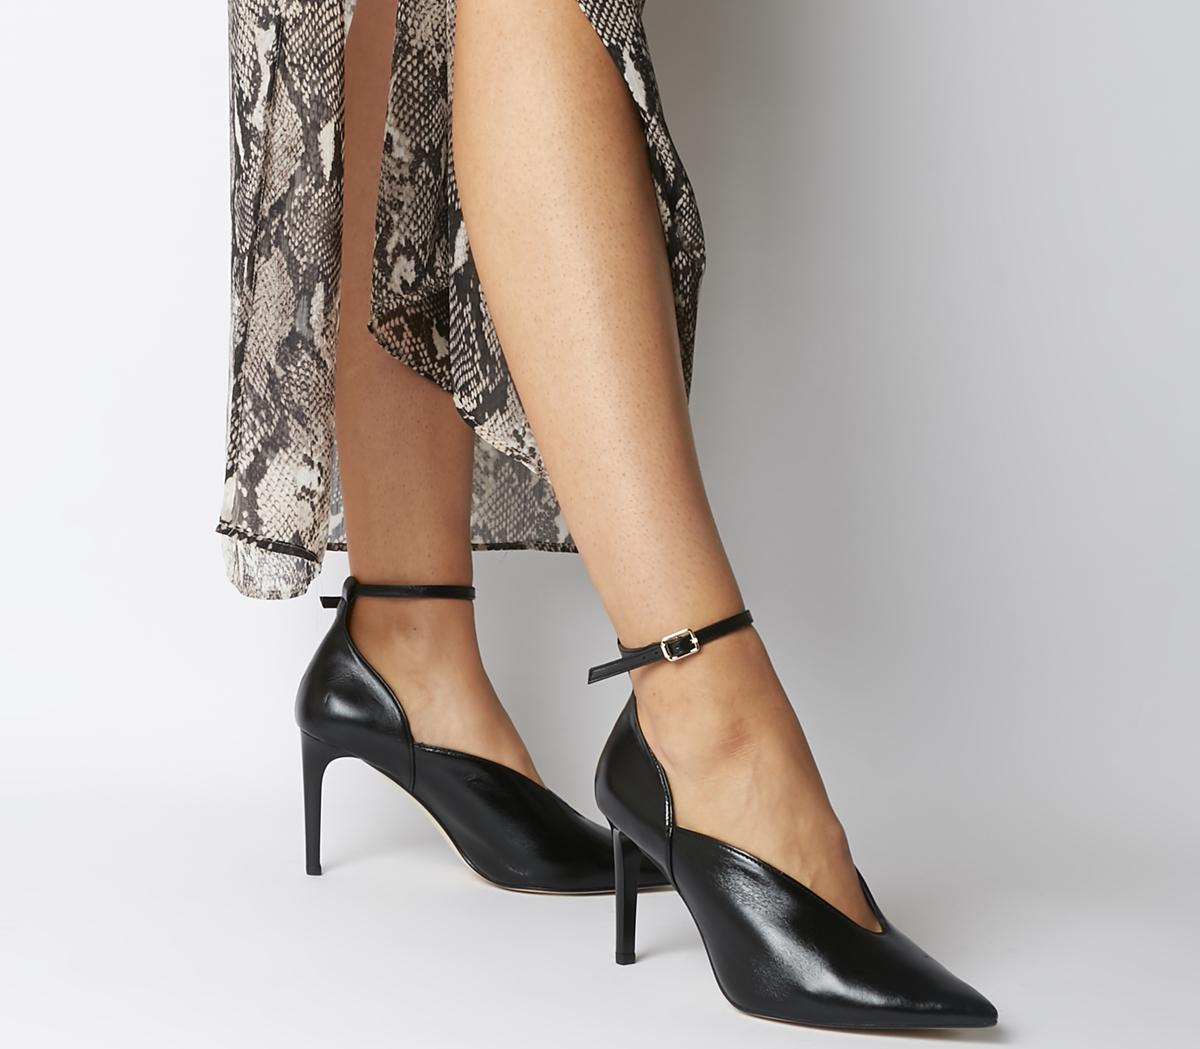 Office Hot Toddy- Ankle Strap Shoe Boot